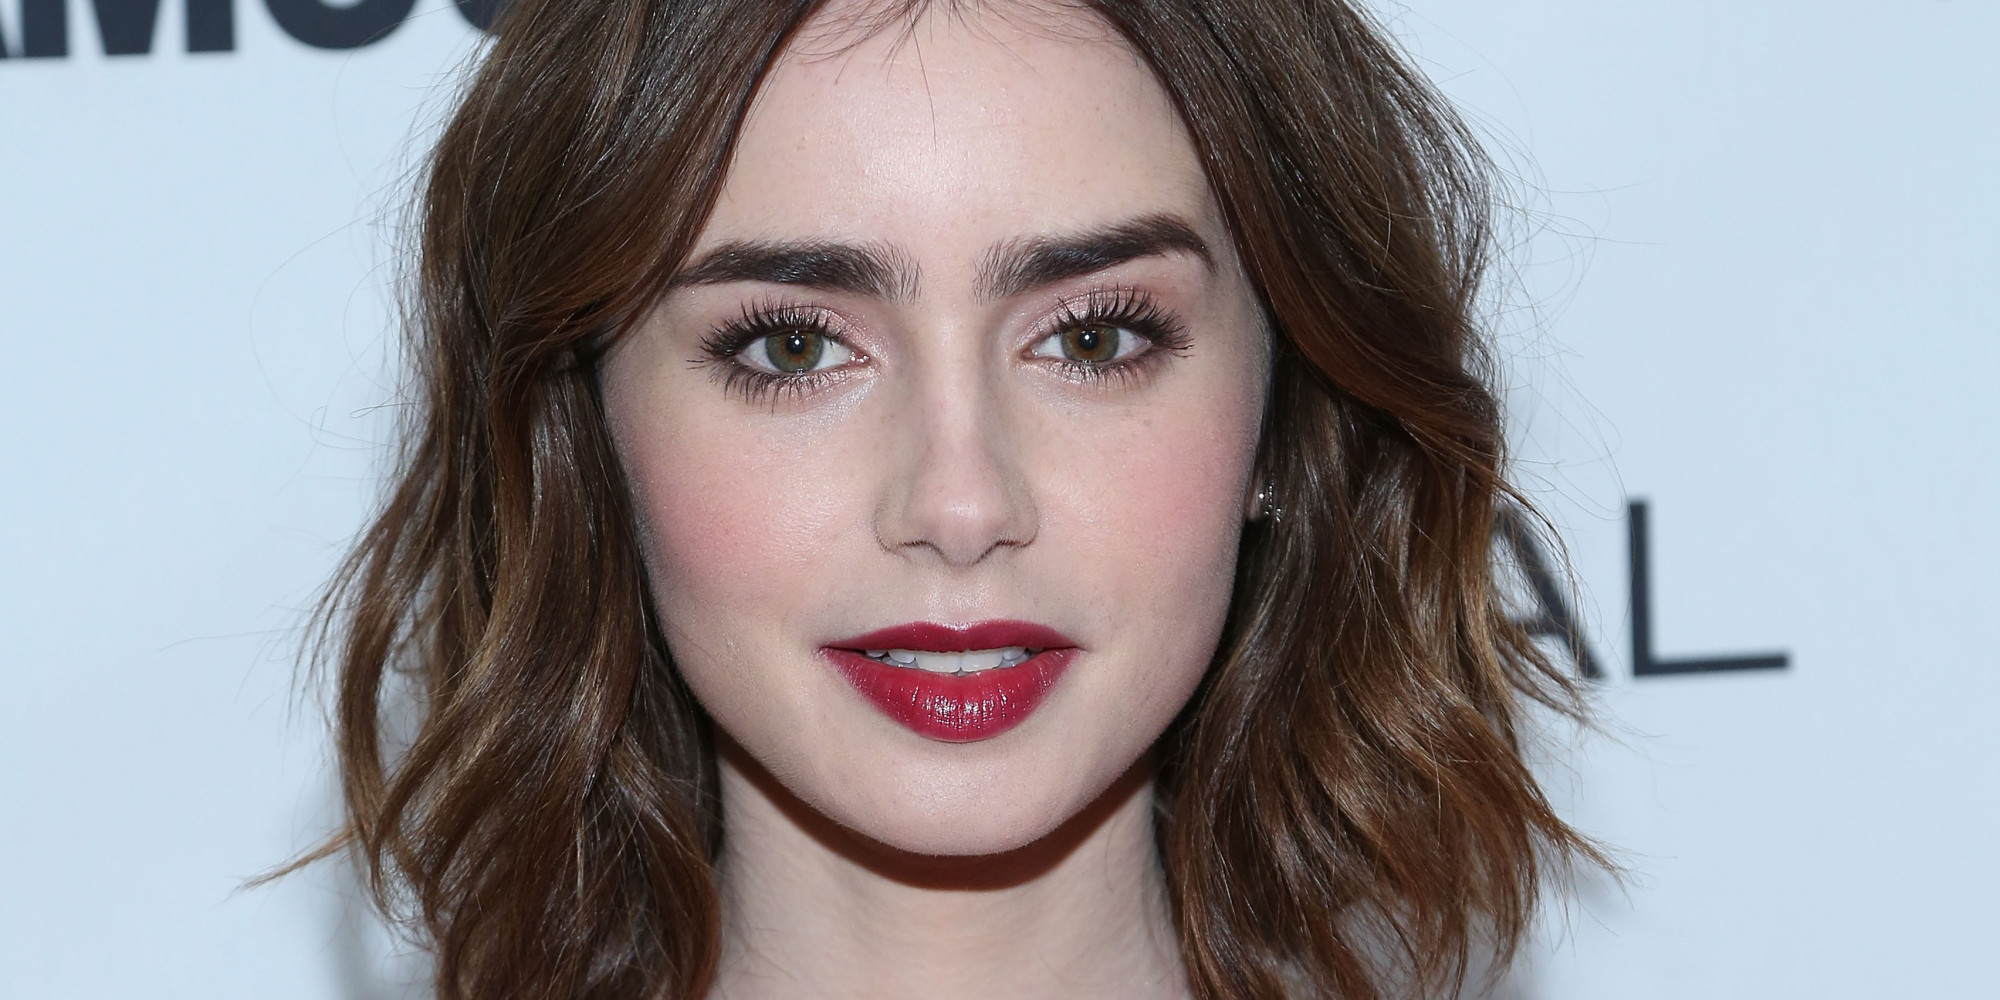 NEW YORK, NY - NOVEMBER 11: Actress Lily Collins attends the Glamour Magazine 23rd annual Women Of The Year gala on November 11, 2013 in New York, United States. (Photo by Taylor Hill/FilmMagic)